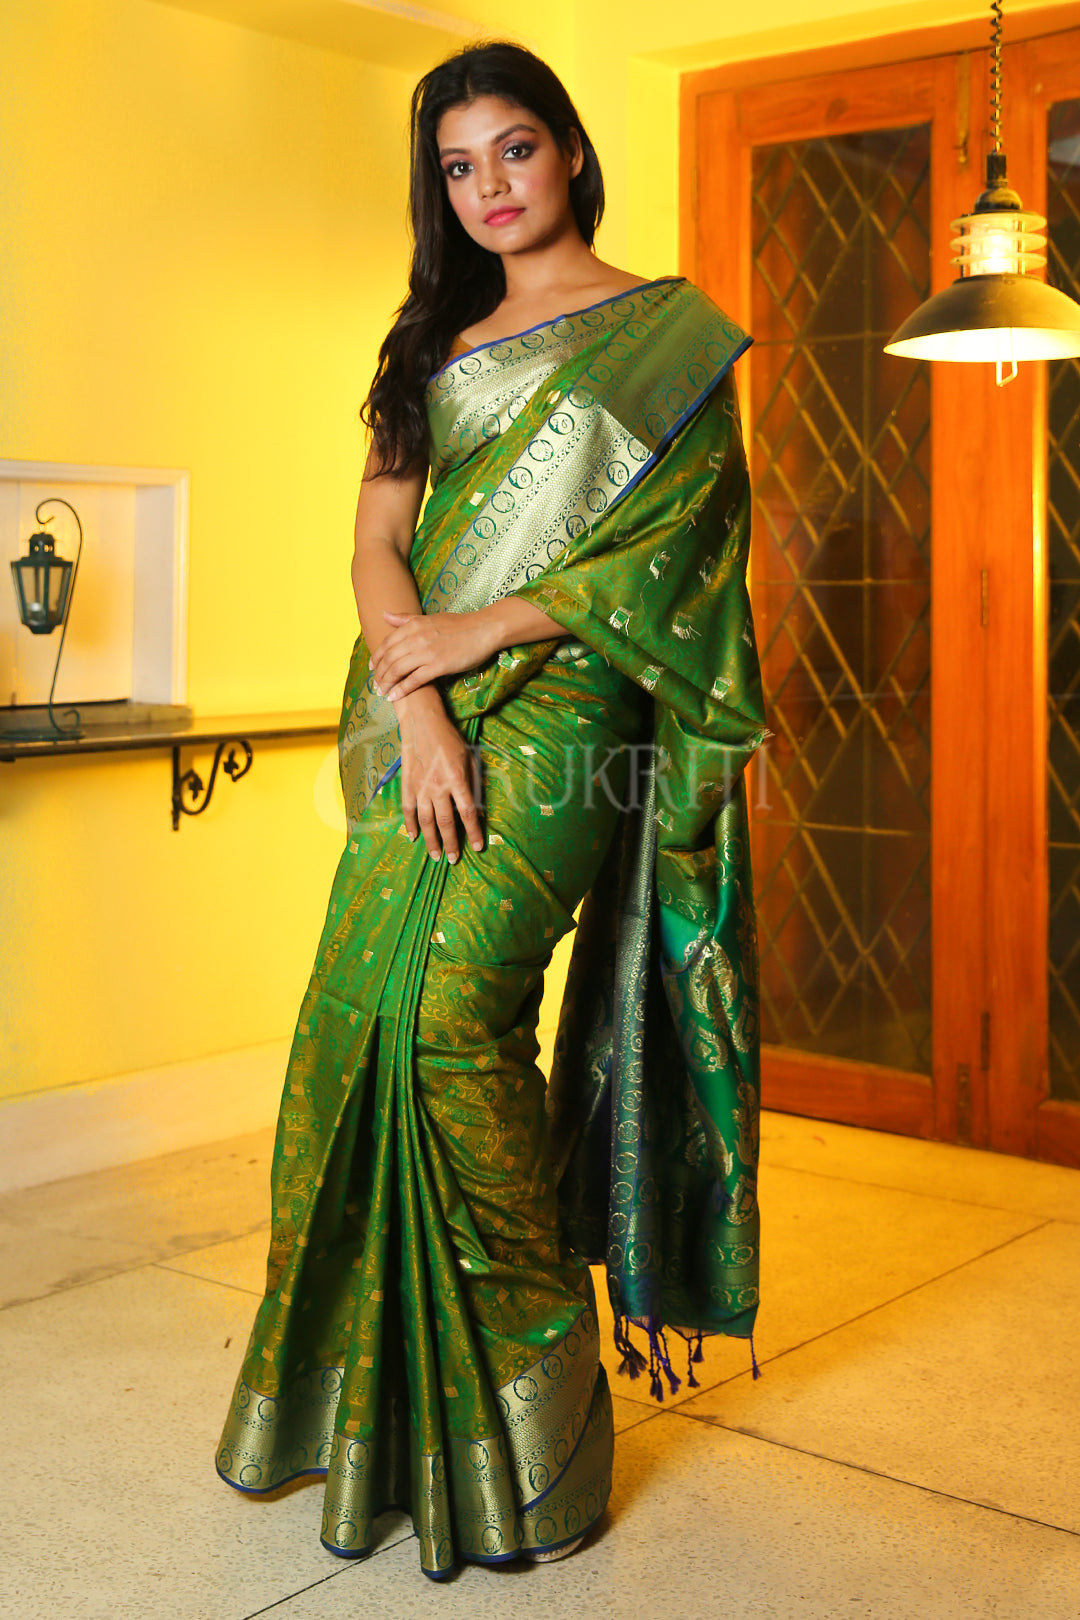 PICKLE GREEN DUAL TONE WOVEN PATOLA SAREE WITH GOLDEN PALLU